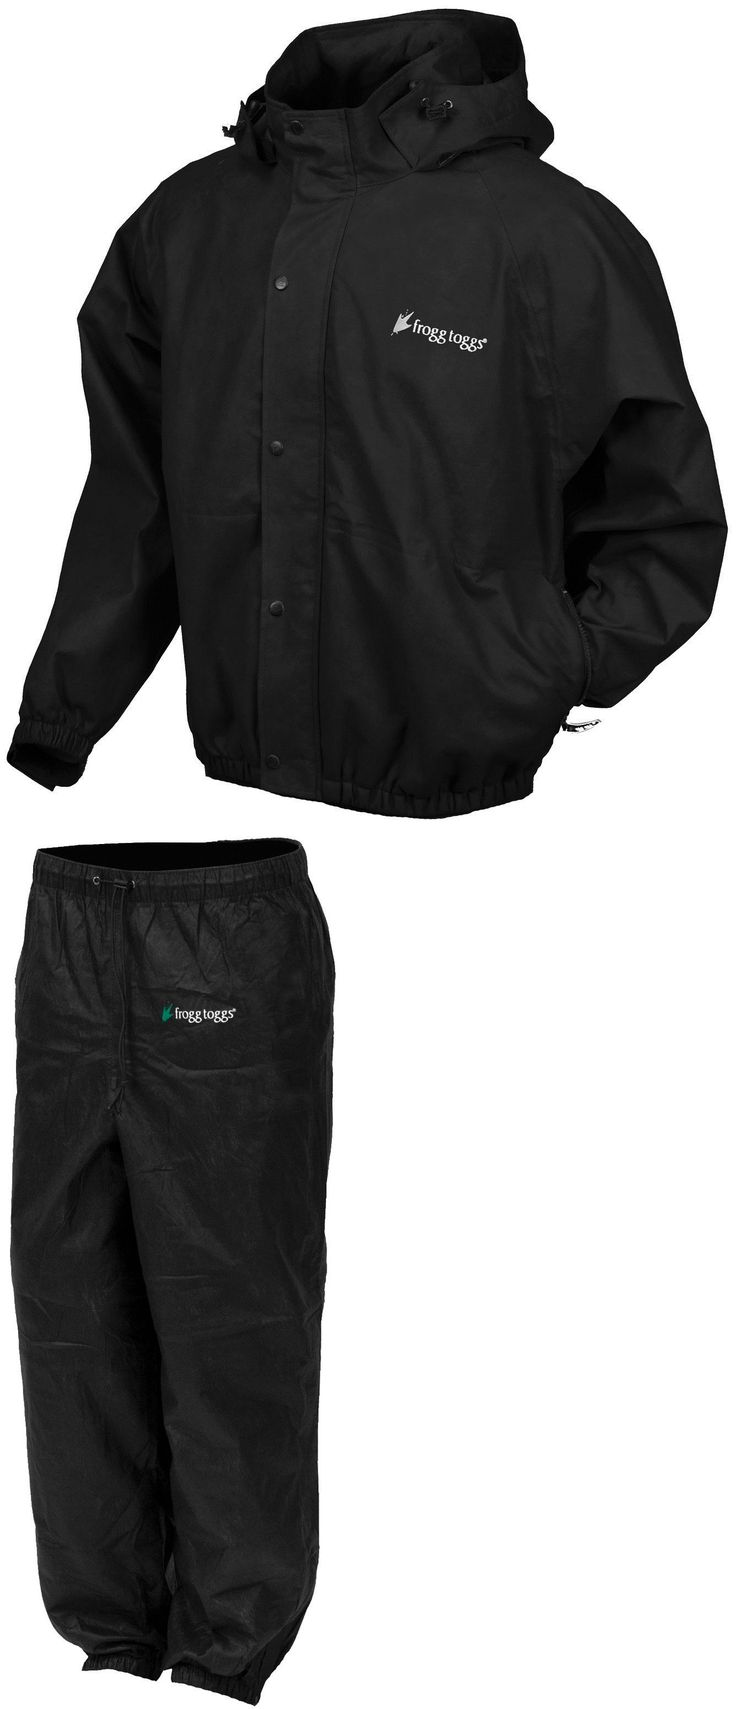 Other Golf Clothing 158939: Frogg Toggs Pro-Action Pa-102 Rain Gear Suit Golf Boating Fishing Hiking Games -> BUY IT NOW ONLY: $54.95 on eBay!